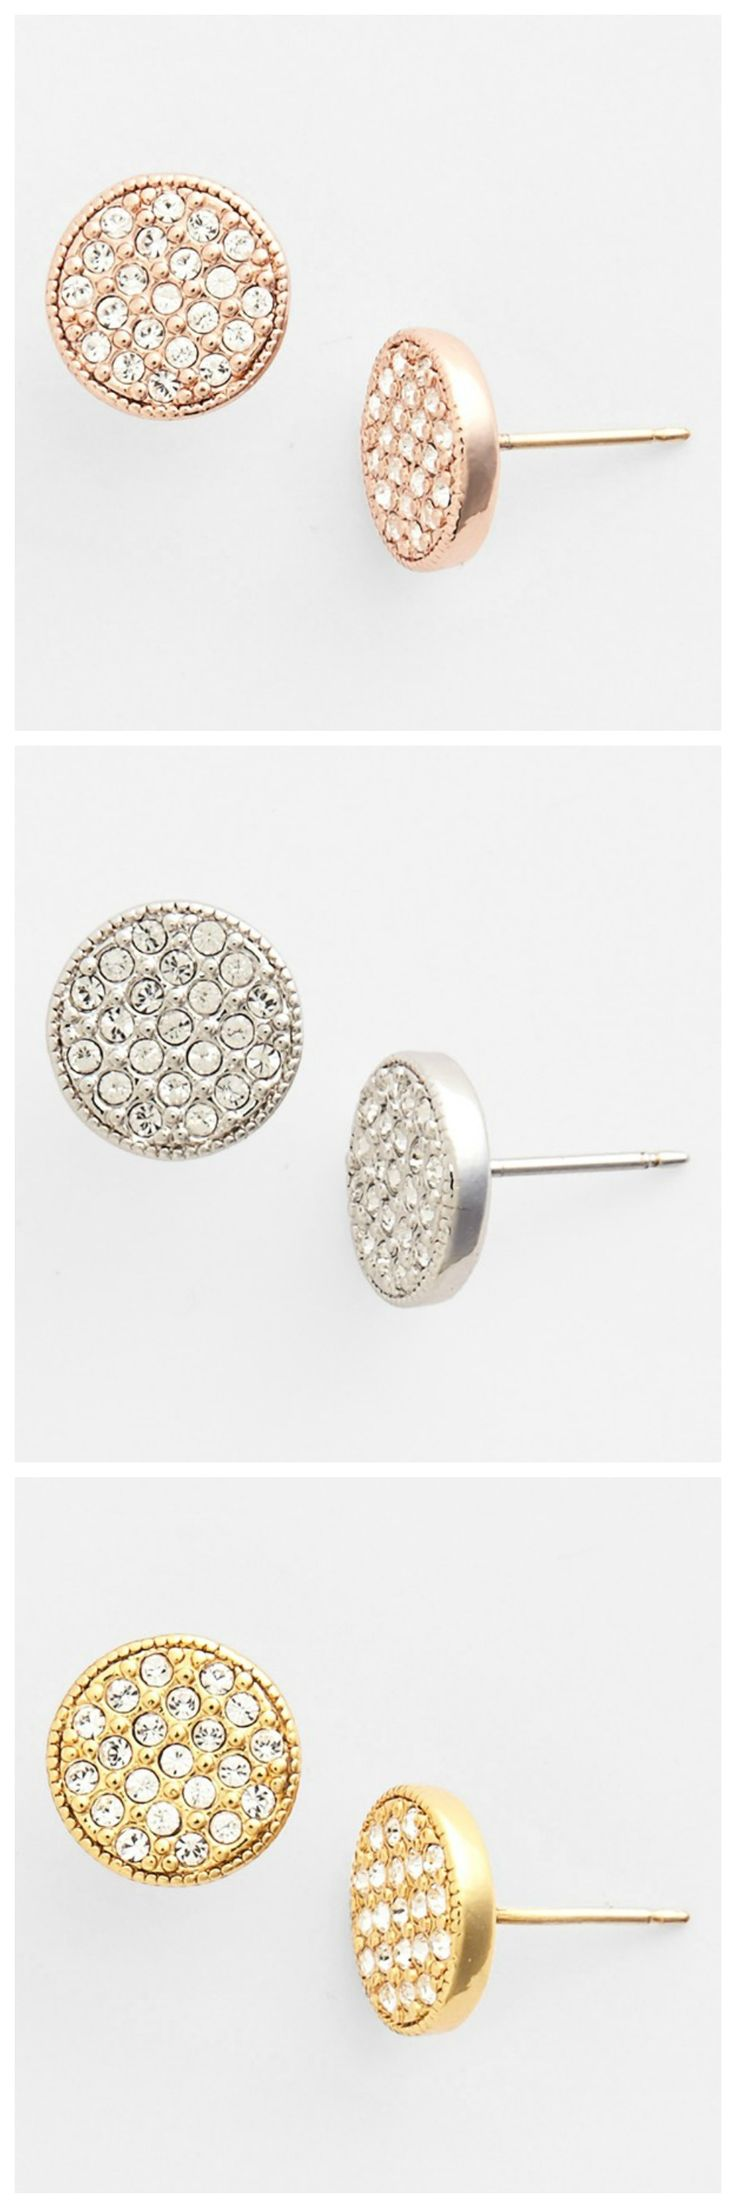 stud sparkly gemma bee jgemma category earings studs earrings j img product